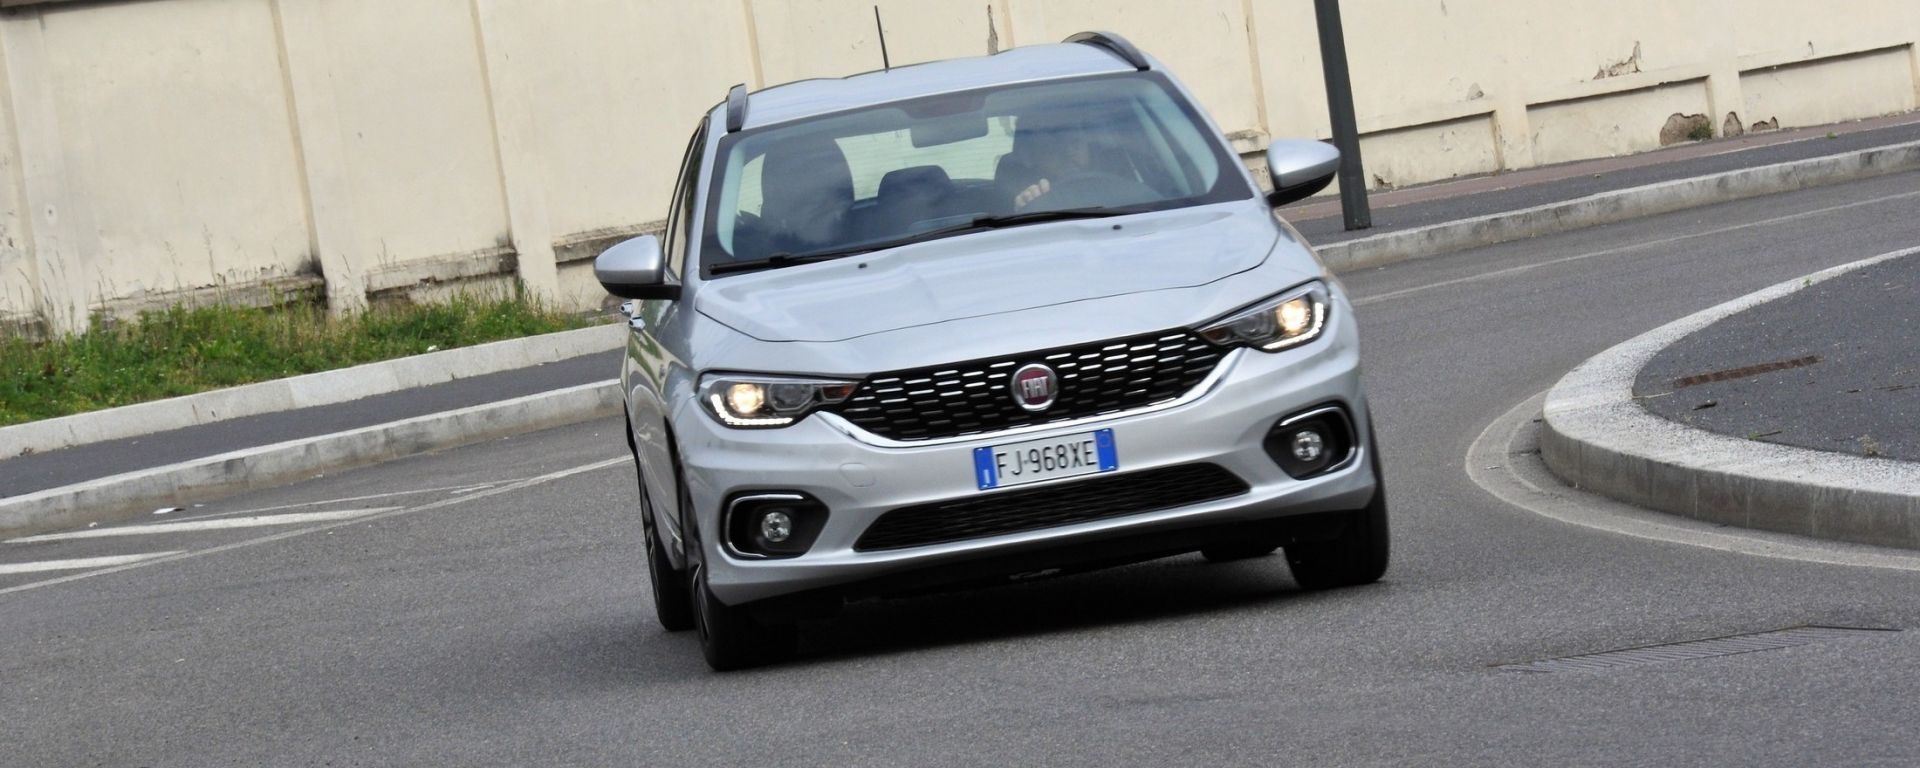 Fiat Tipo Station Wagon: il test drive